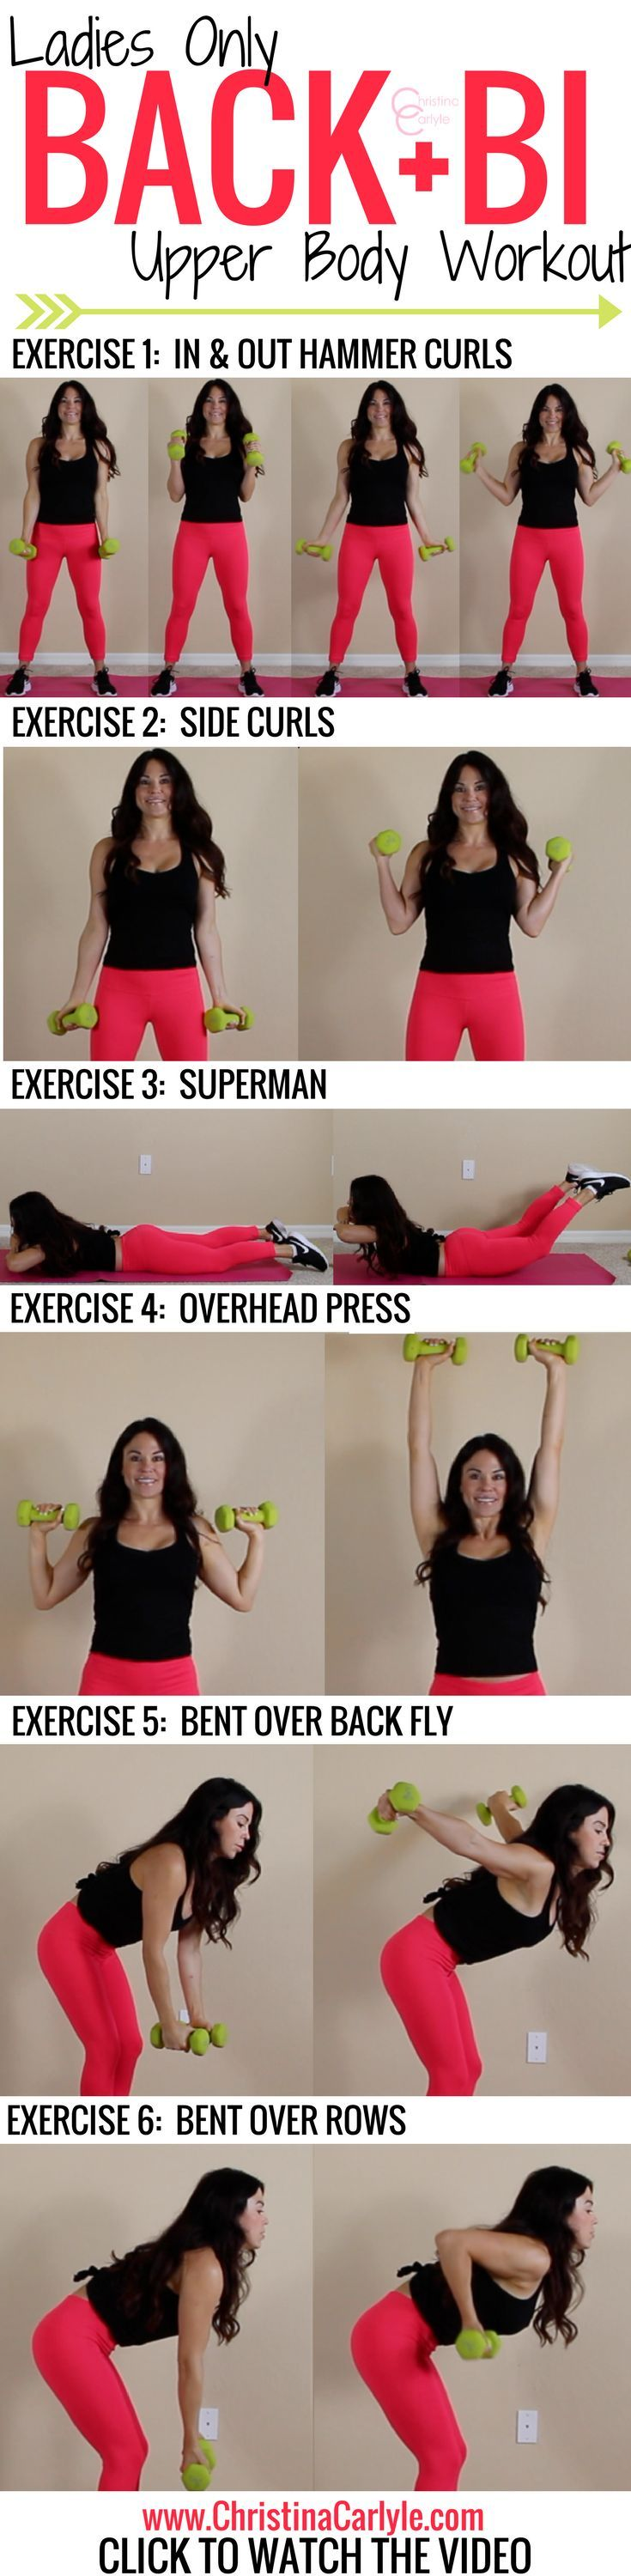 An easy, but effective back and bicep workout for women. This complete back and biceps workout has 6 exercises that are perfect for women.